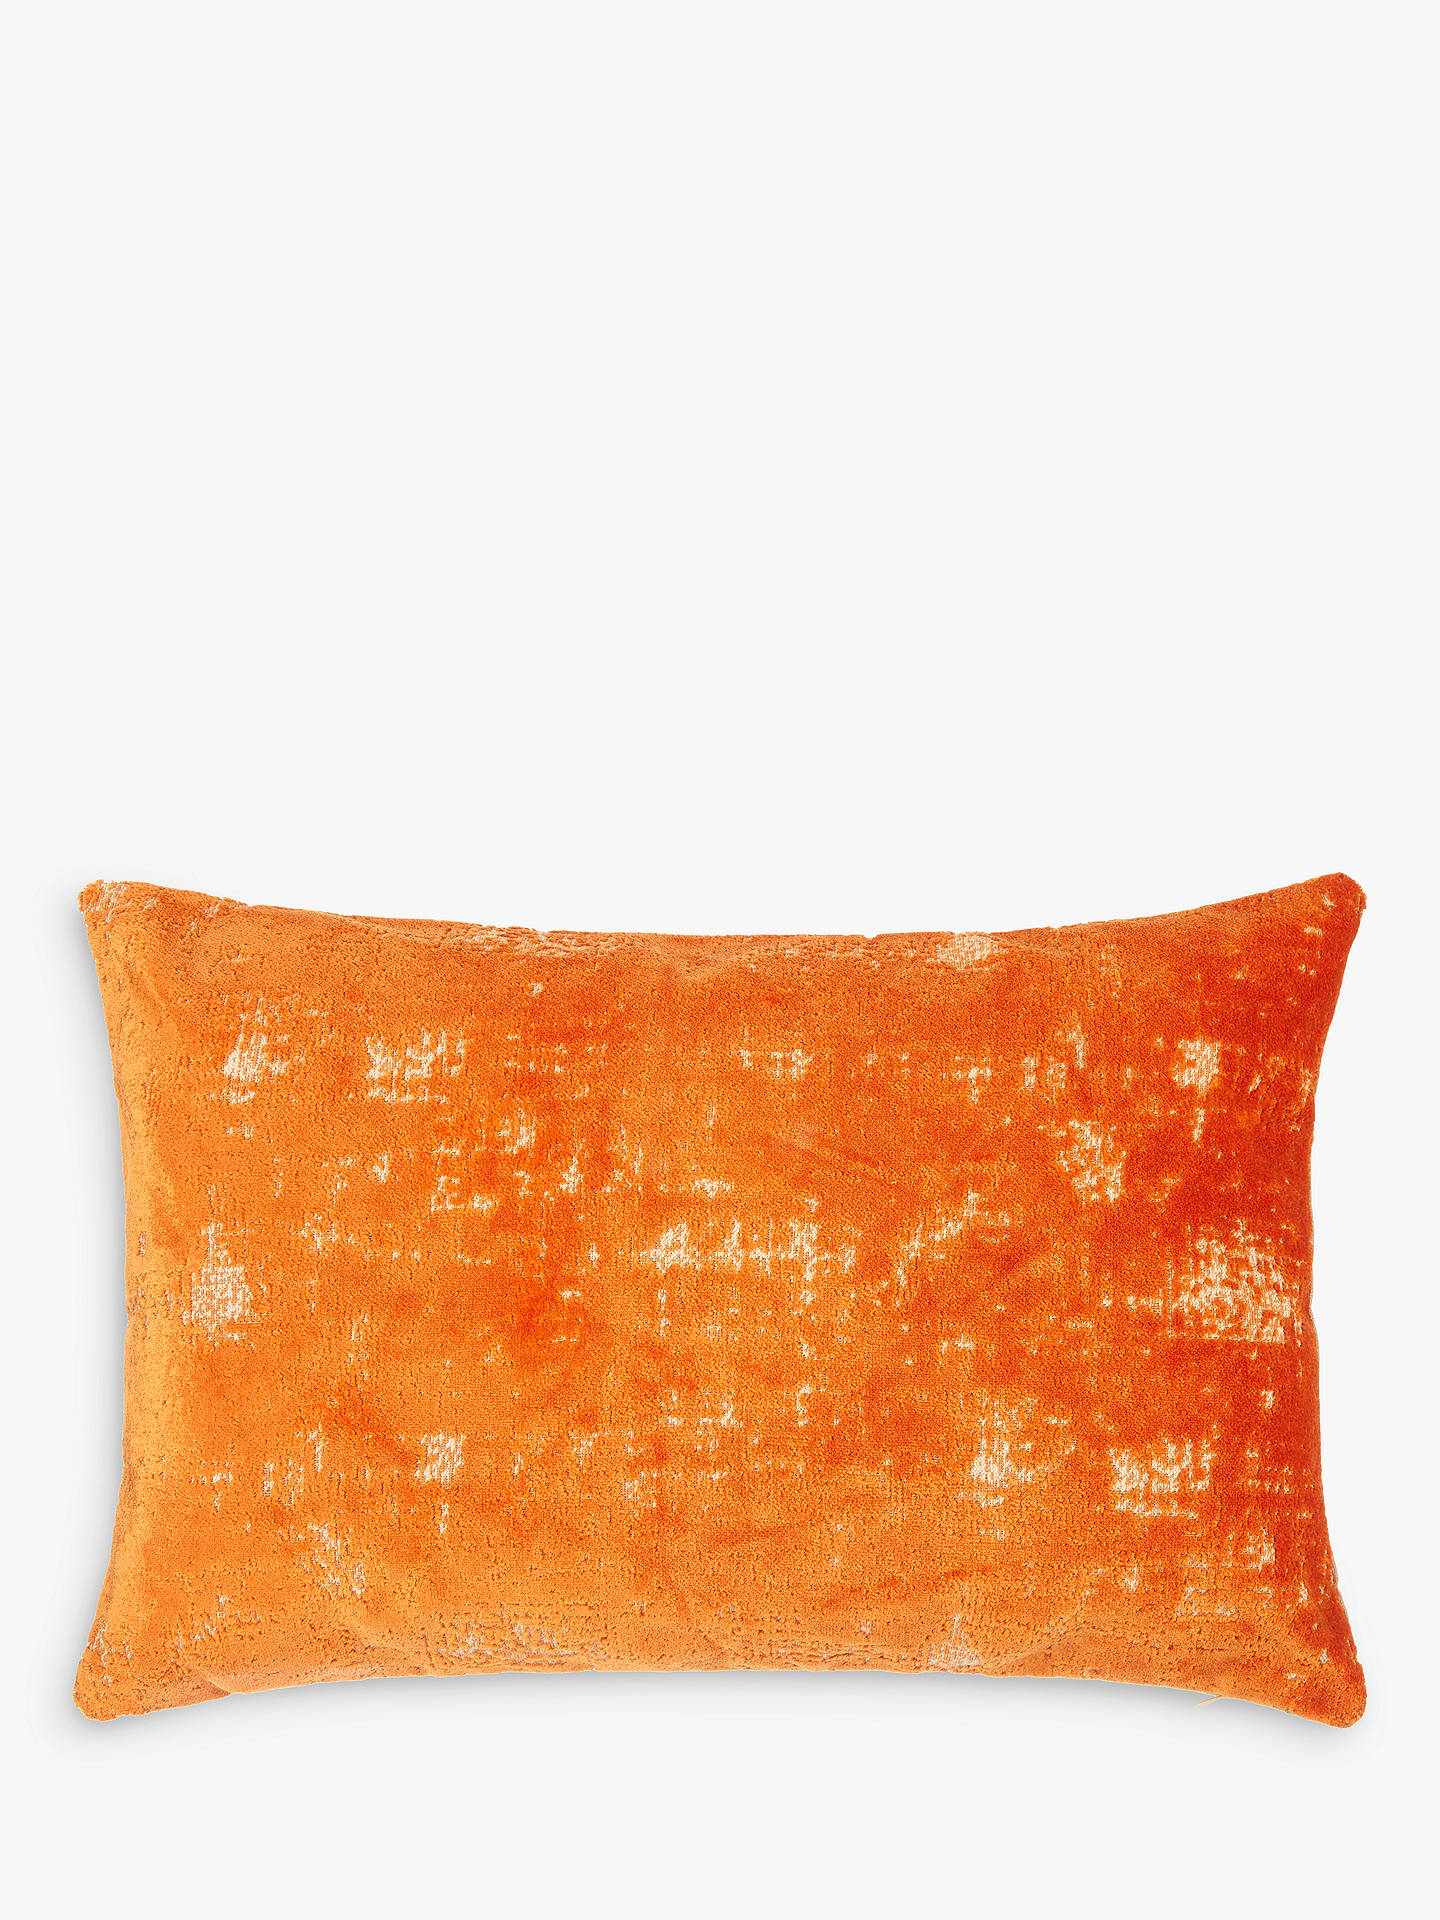 BuyJohn Lewis & Partners Distressed Velvet Cushion, Clementine Online at johnlewis.com